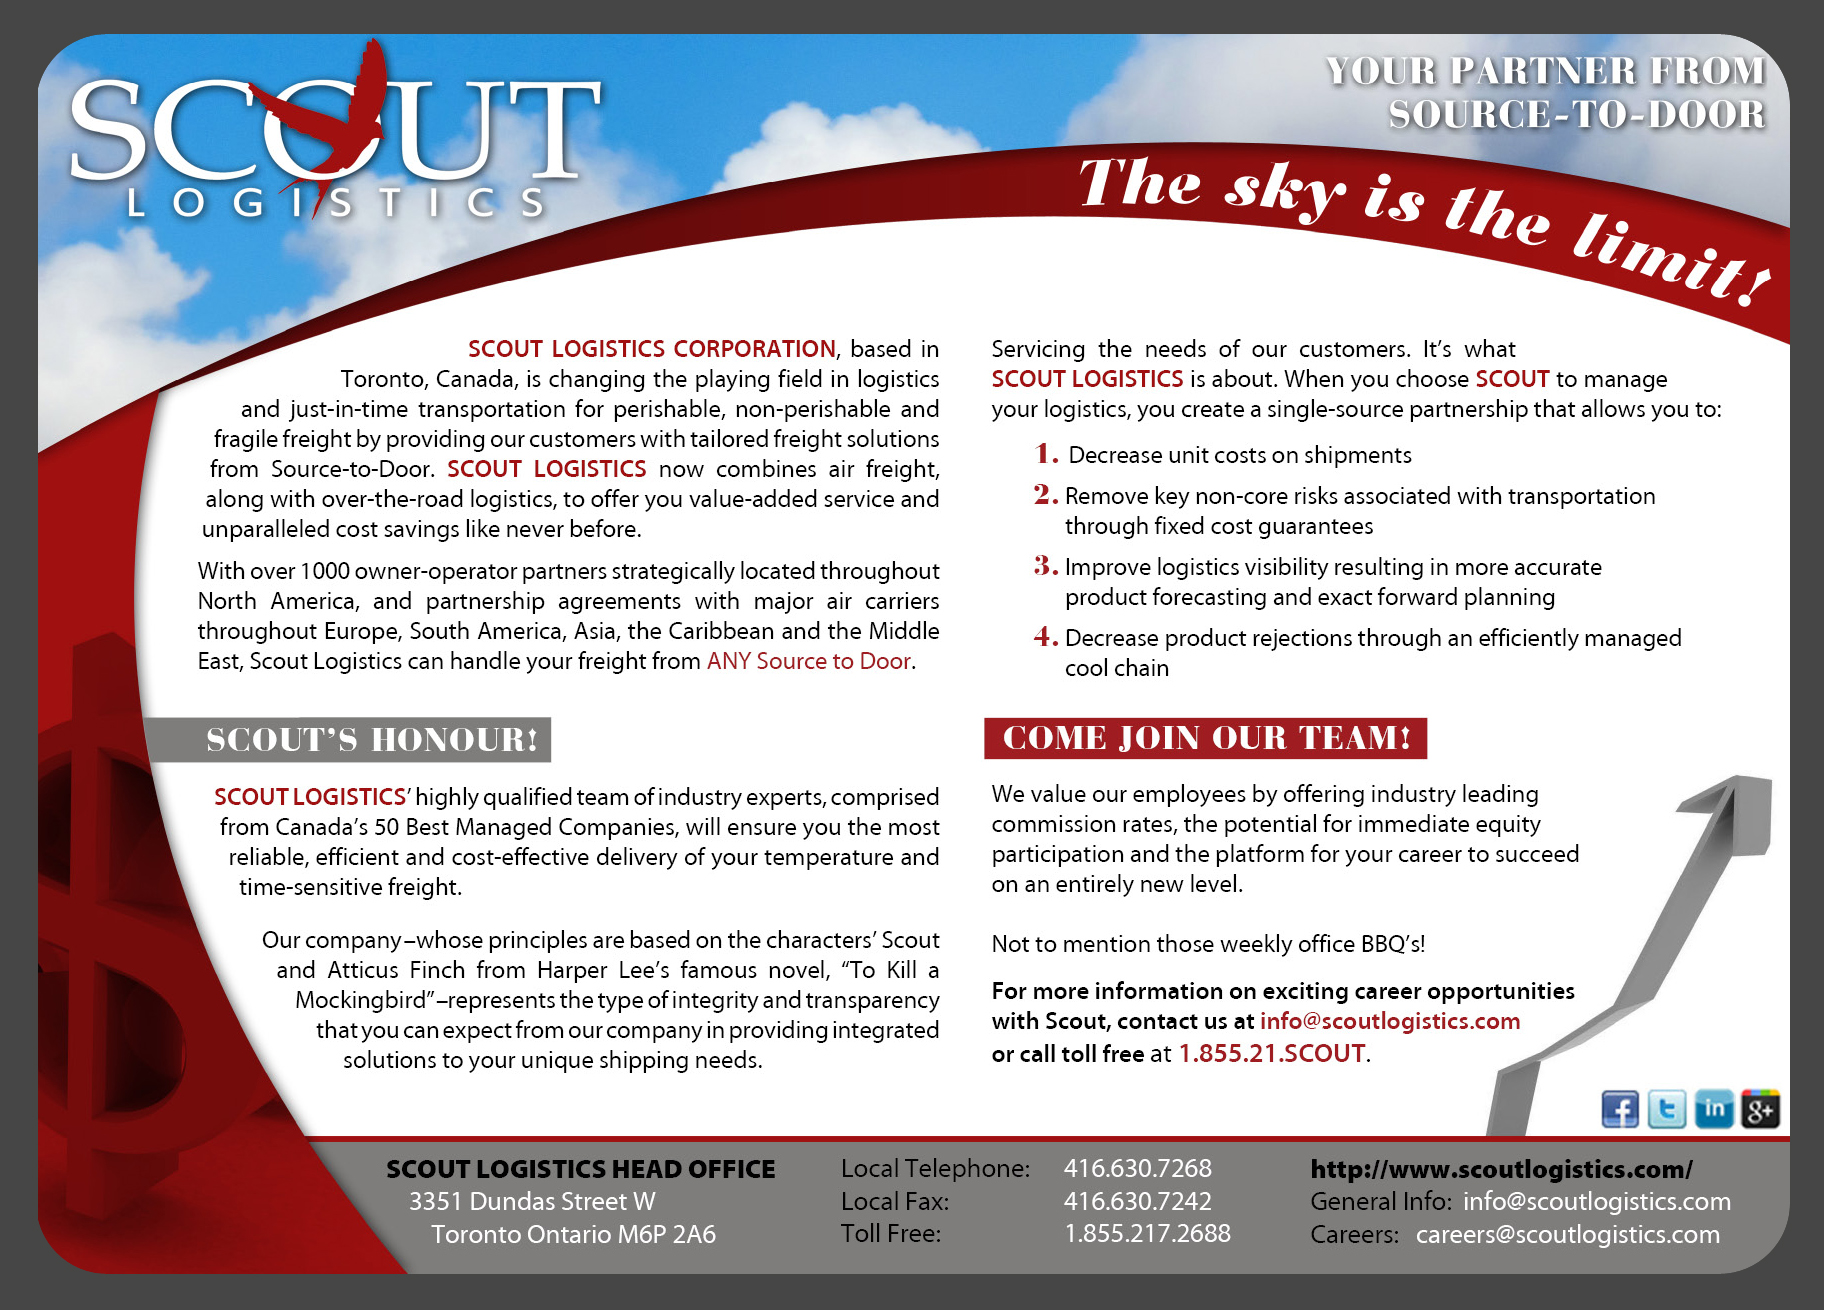 Print Design by nausigeo - Entry No. 5 in the Print Design Contest Creative Print Design for Scout Logistics Corporation.